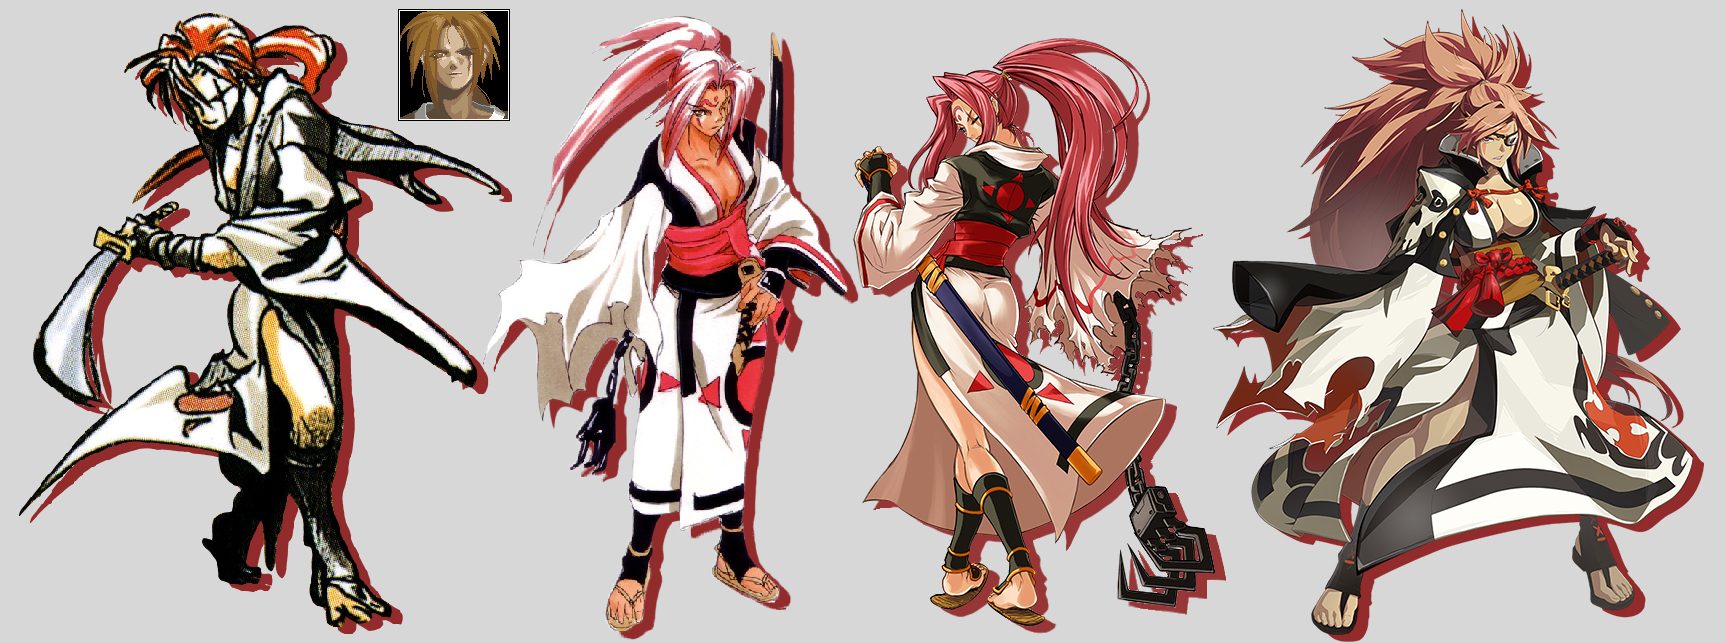 [Top 5] - Apelões dos Games de Luta Baiken-set__